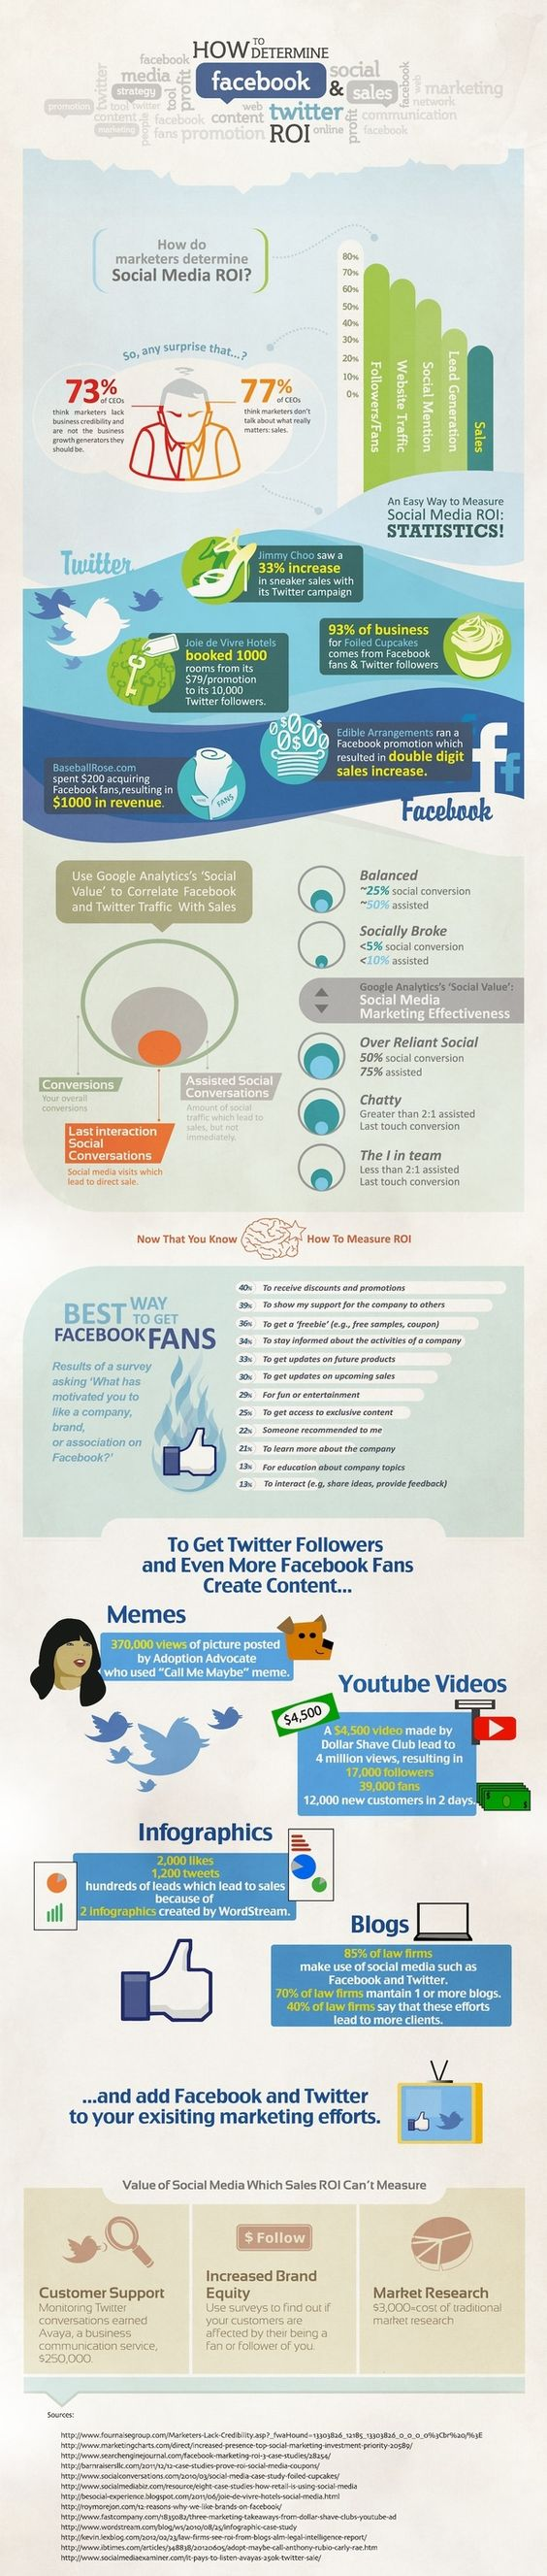 Facebook and Twitter ROI